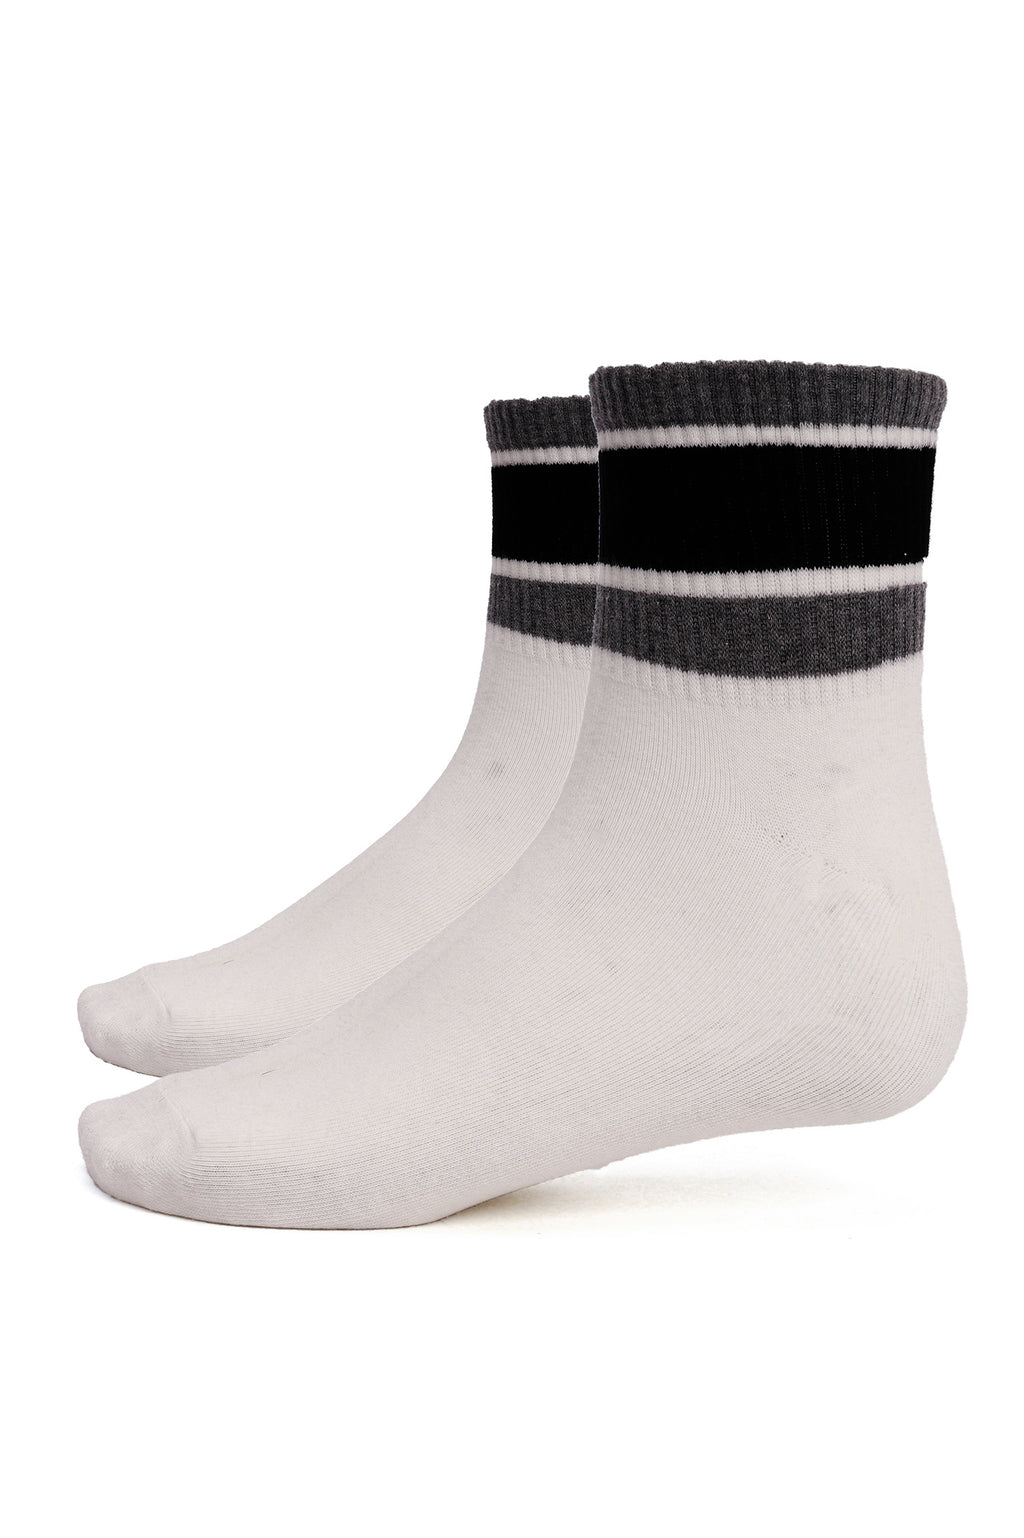 SPORTS SOCKS -WHITE-BLACK